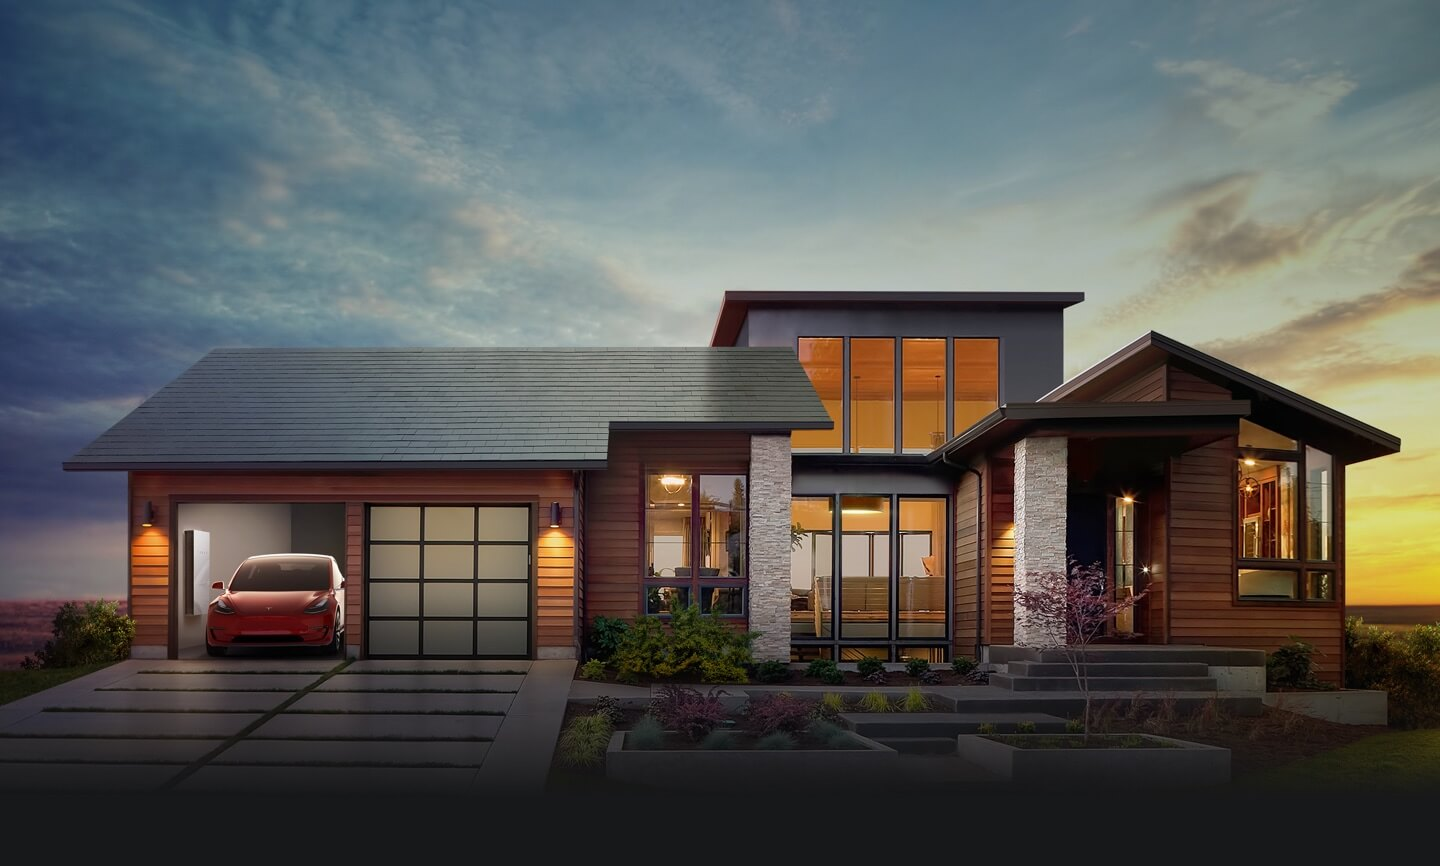 Tesla's New Solar Power Tiles Are Coming